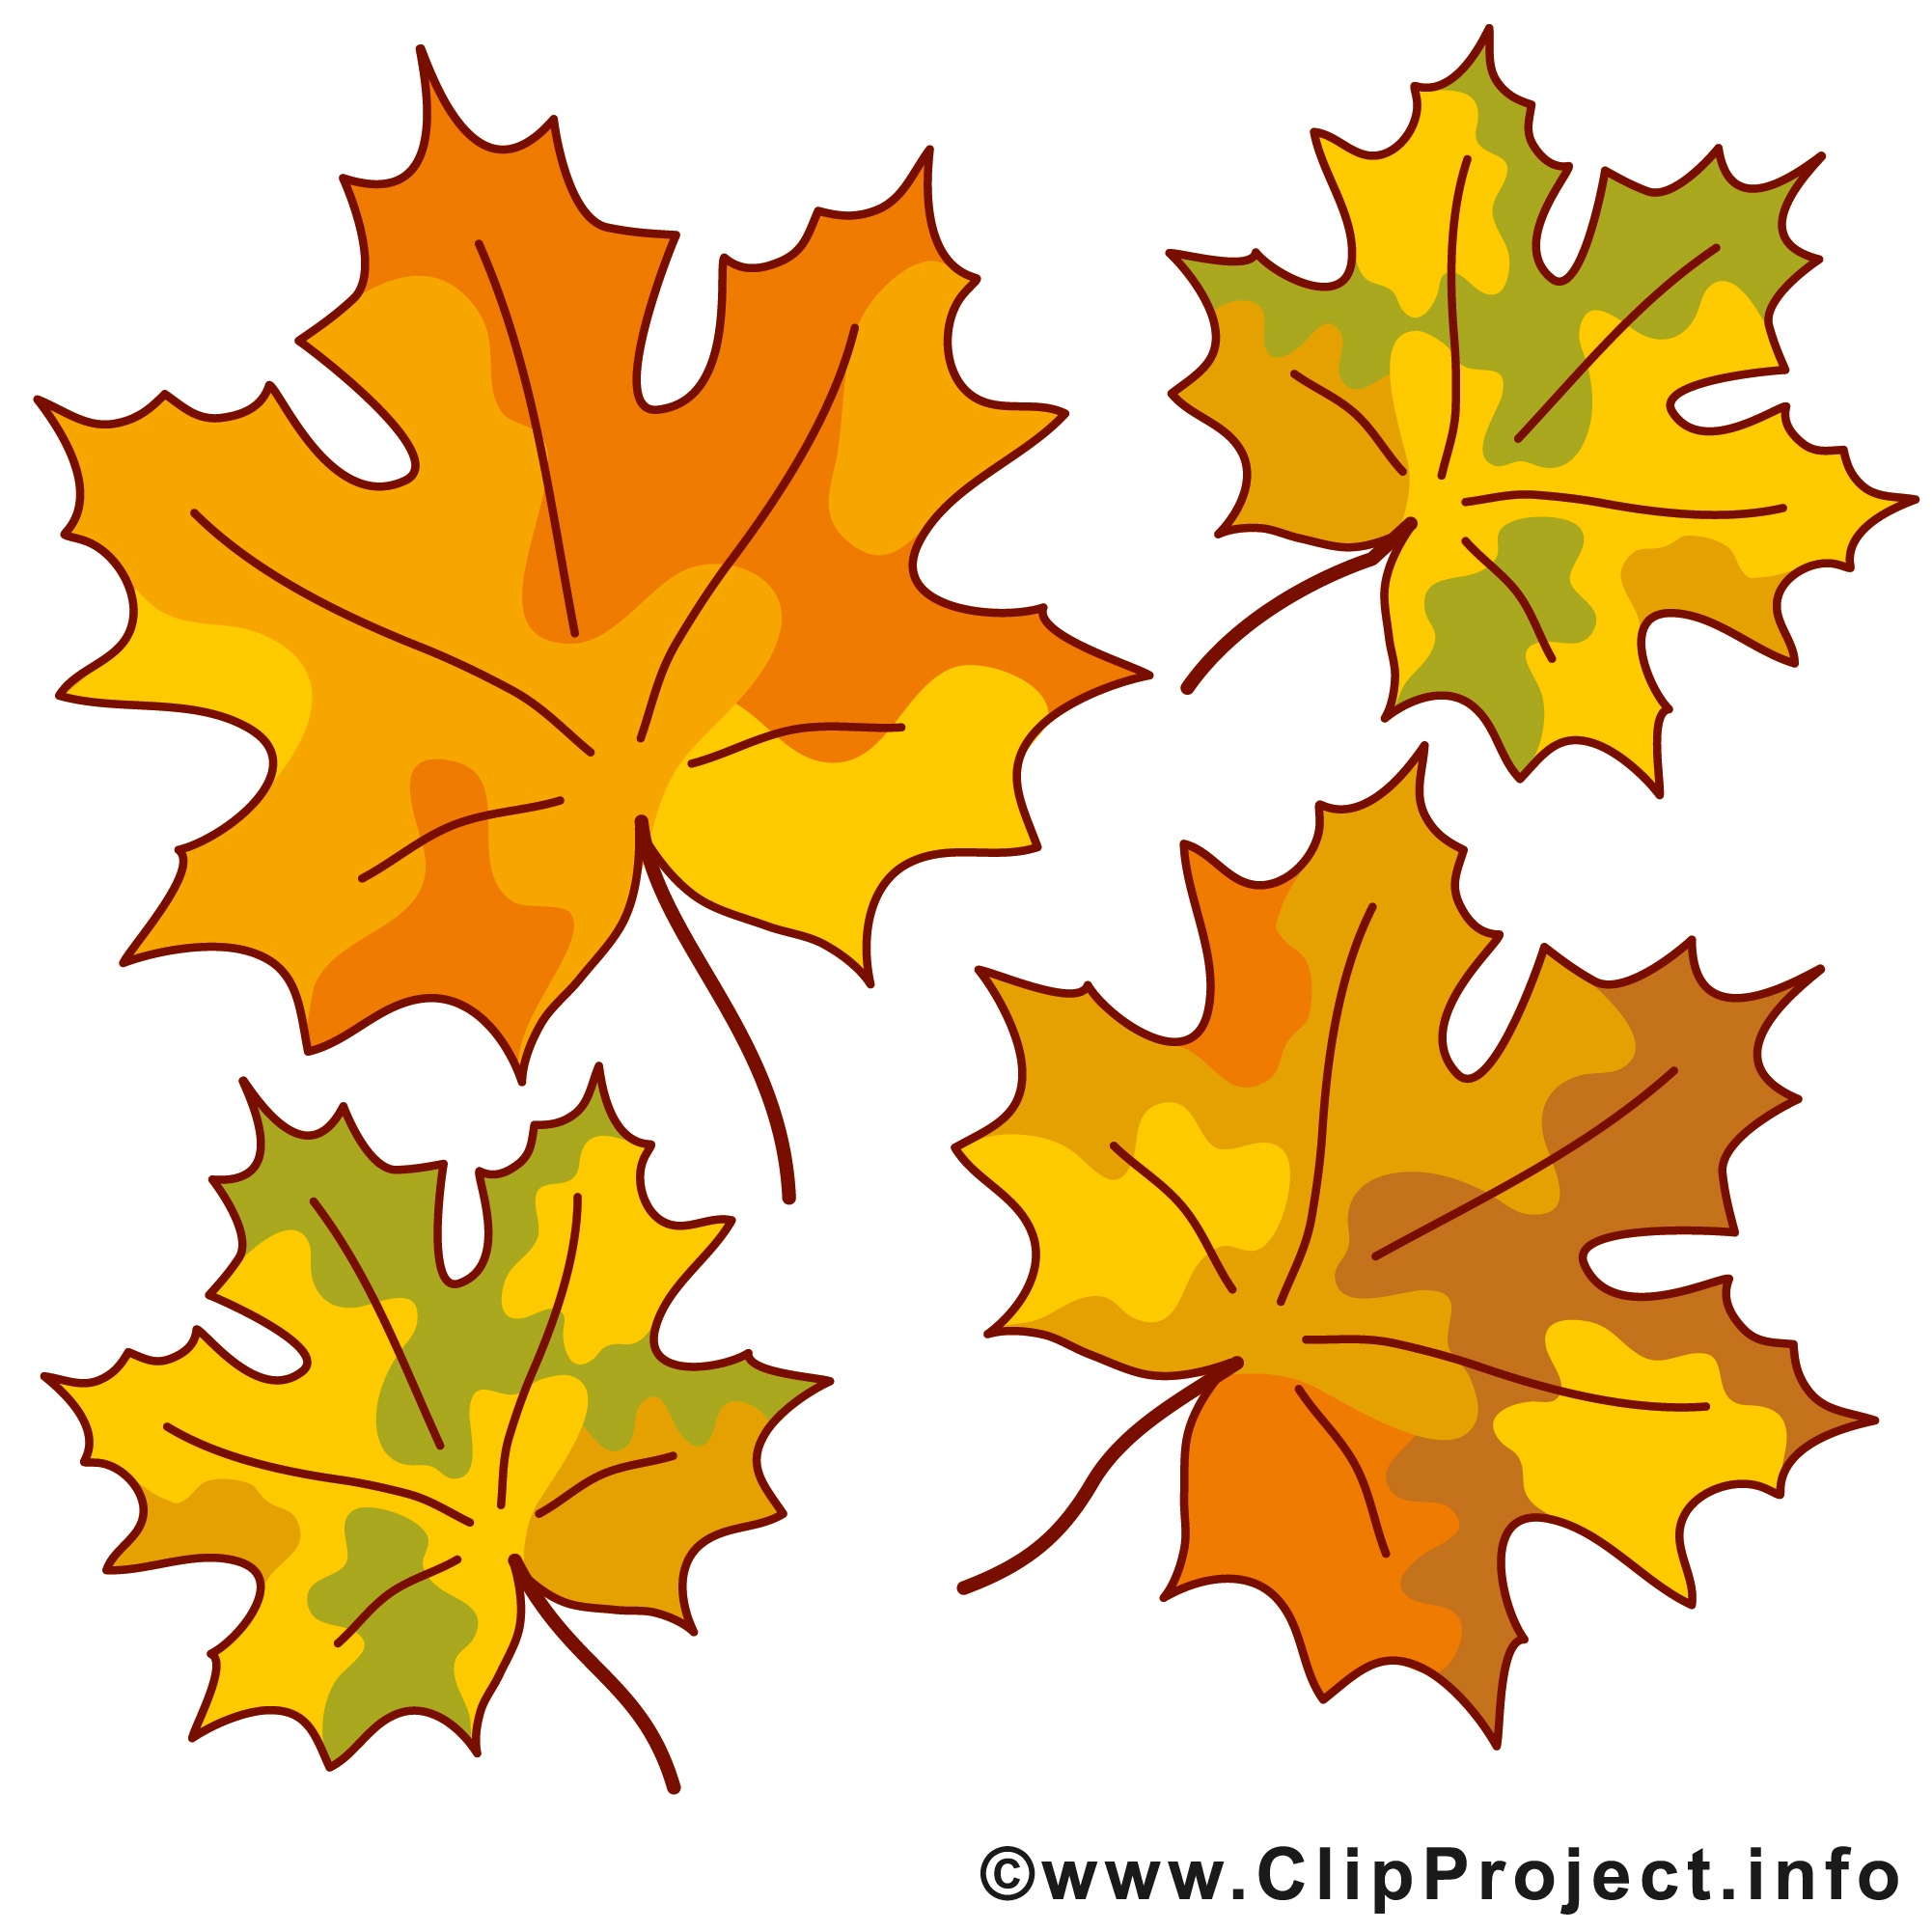 Der herbst clipart jpg black and white library Der herbst clipart - ClipartFest jpg black and white library